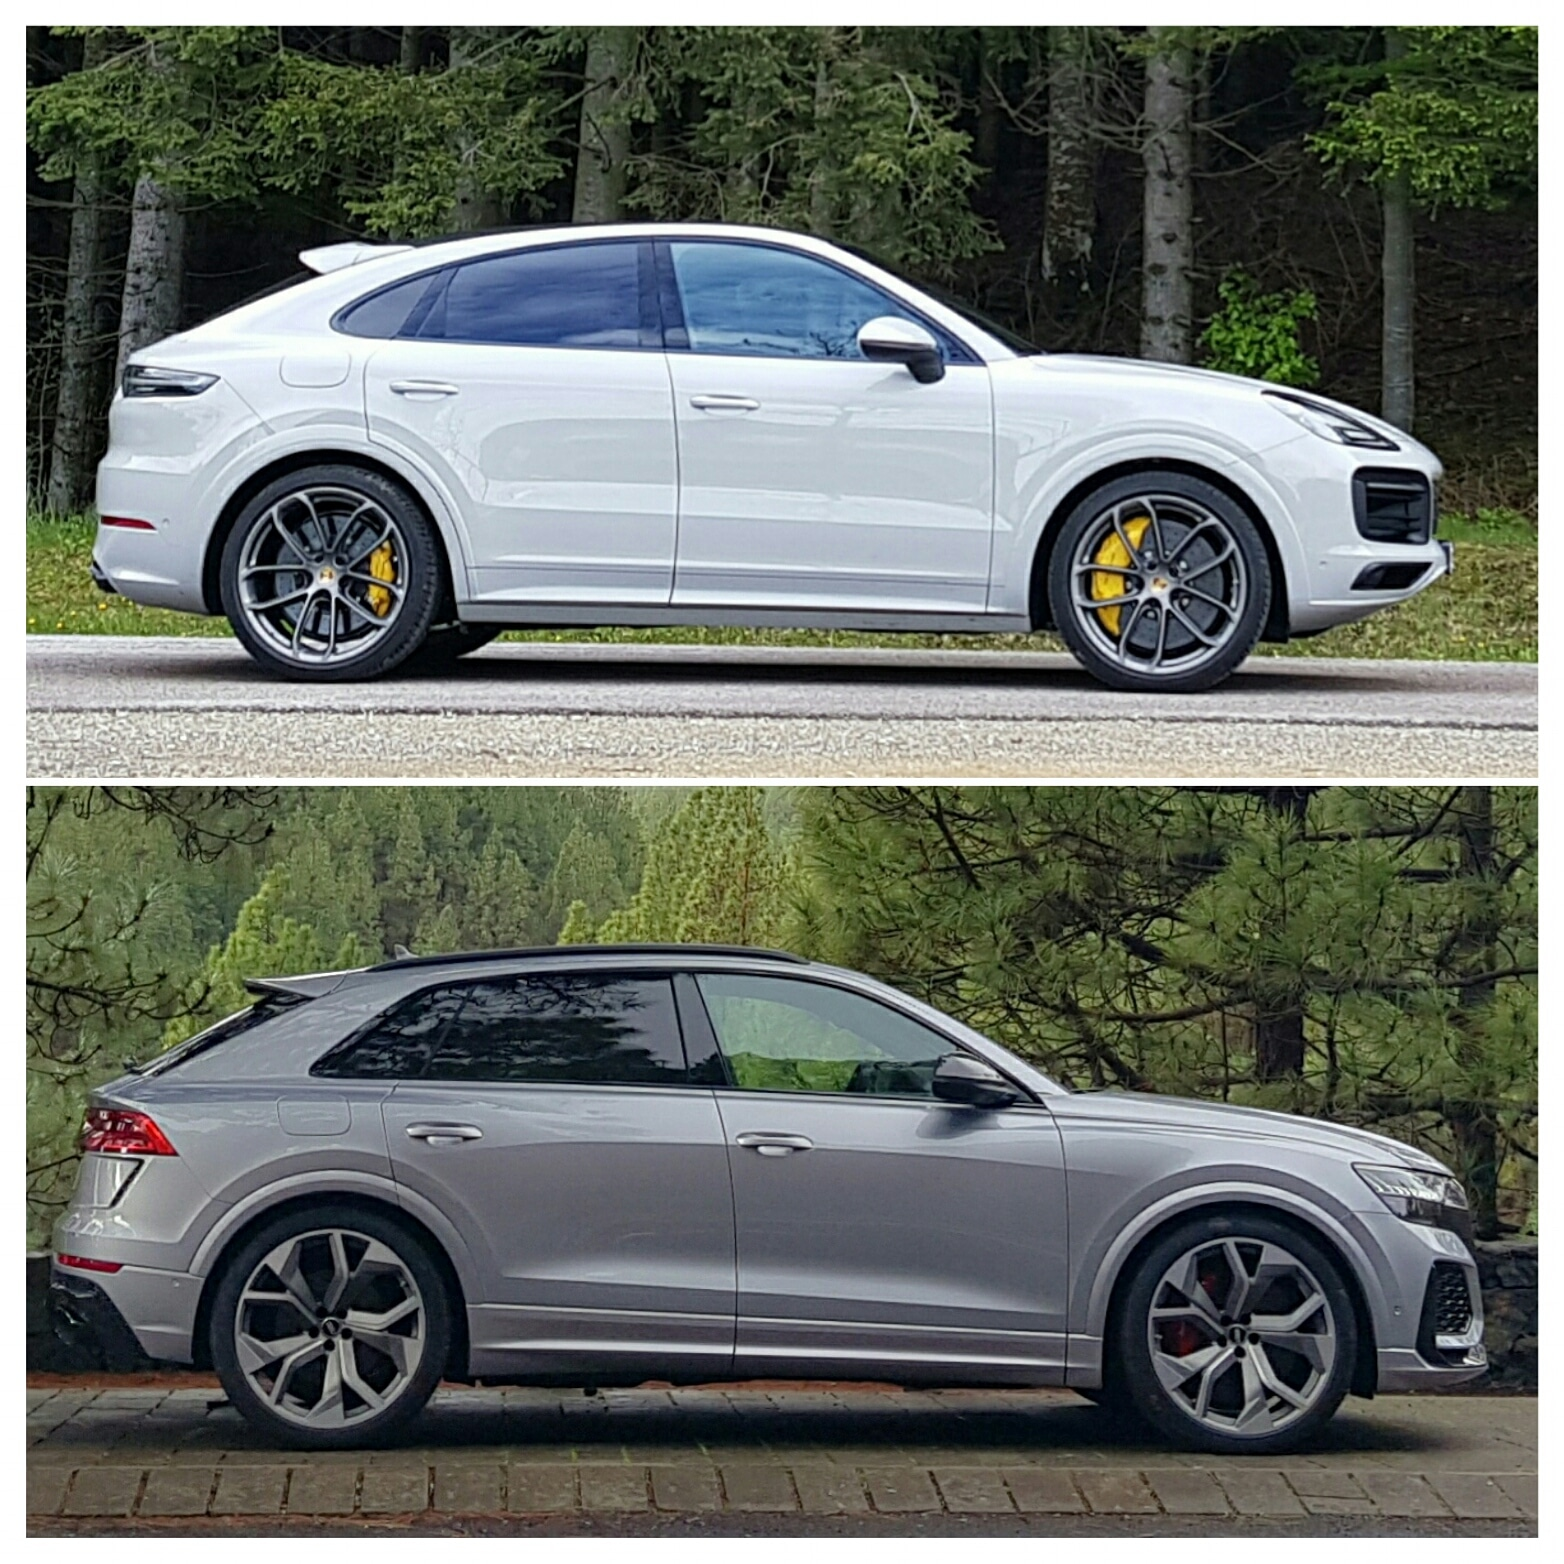 Here's a handy way to compare the 2: Cayenne Coupe is on top, RS Q8 below